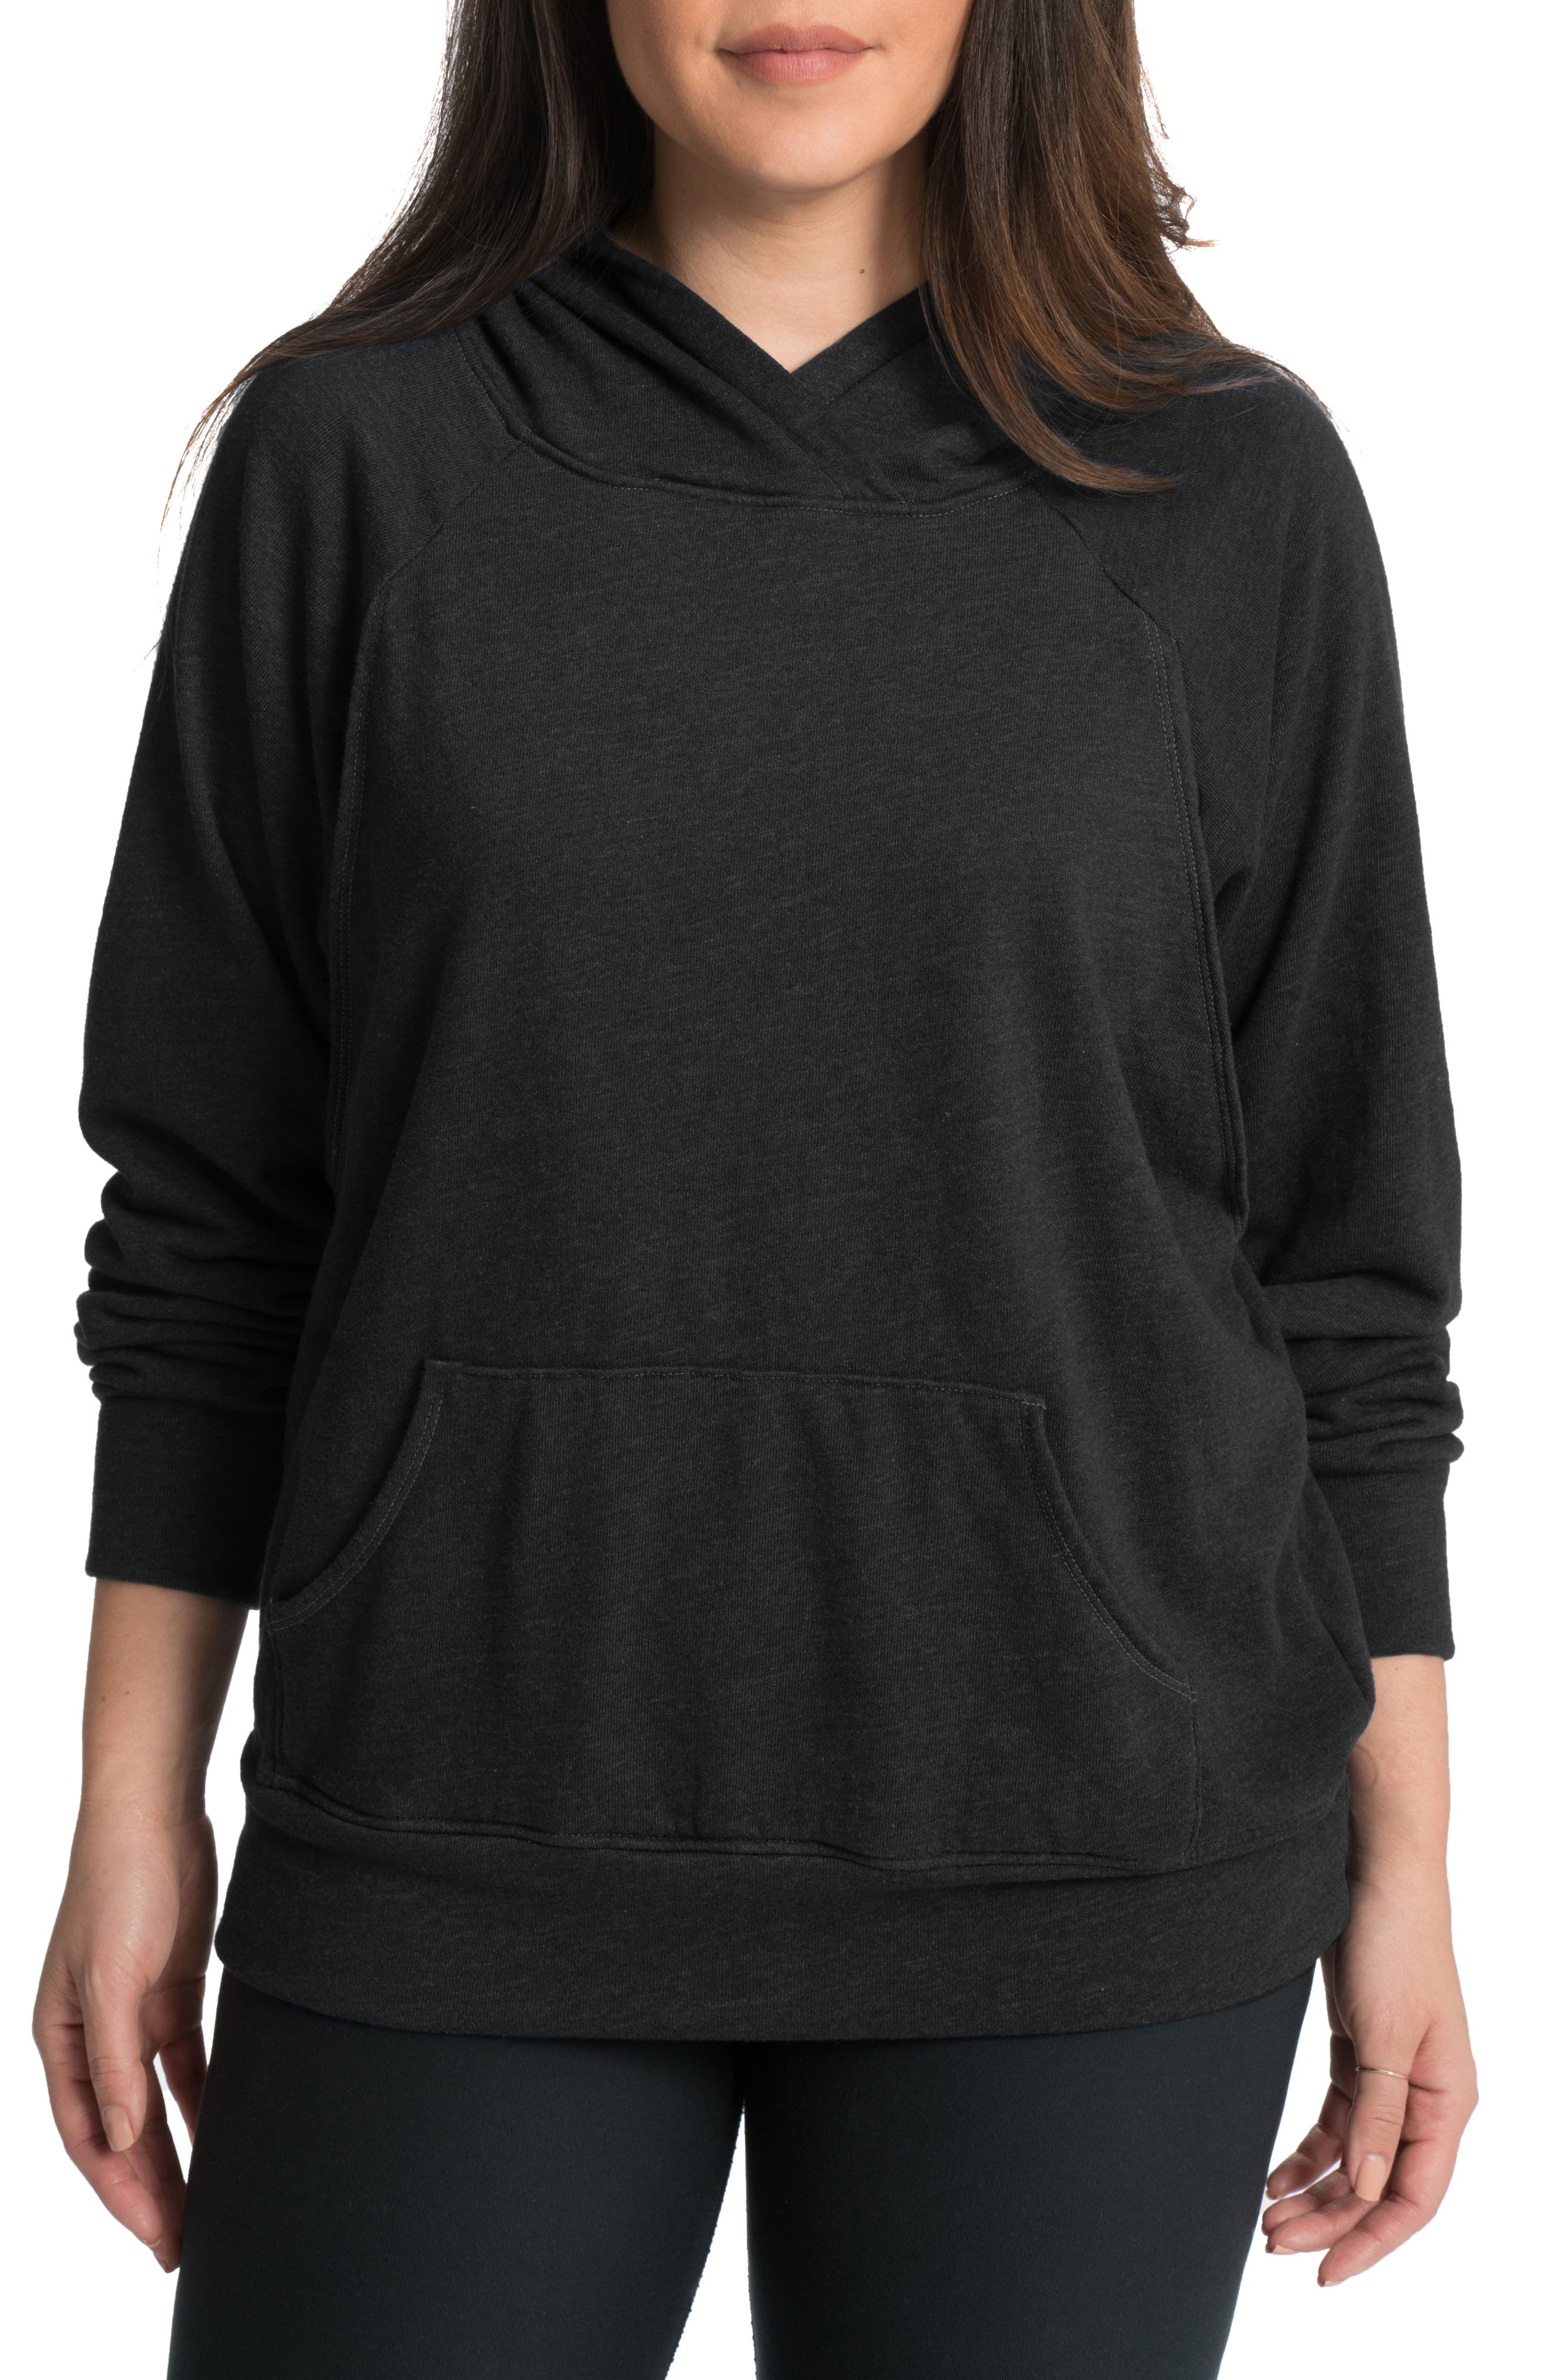 Relaxed Daily Maternity Nursing Hoodie,                         Main,                         color, 019